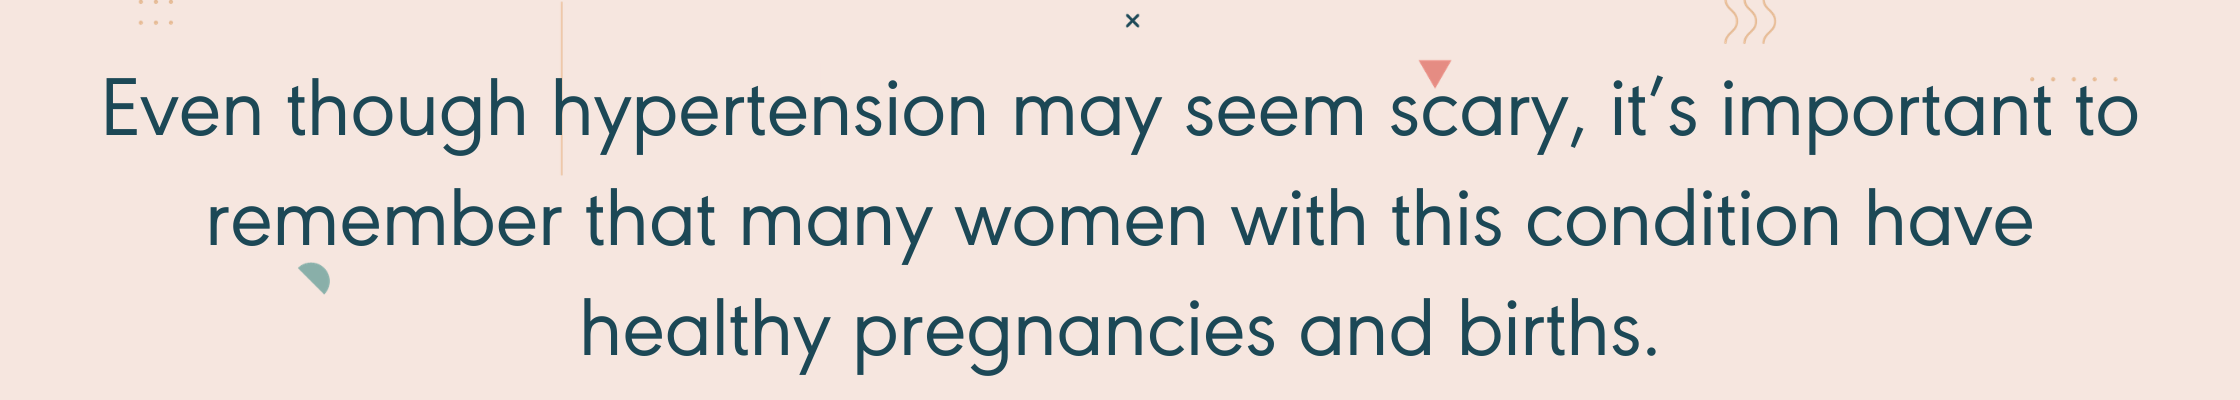 gestational hypertension and preeclampsia quote